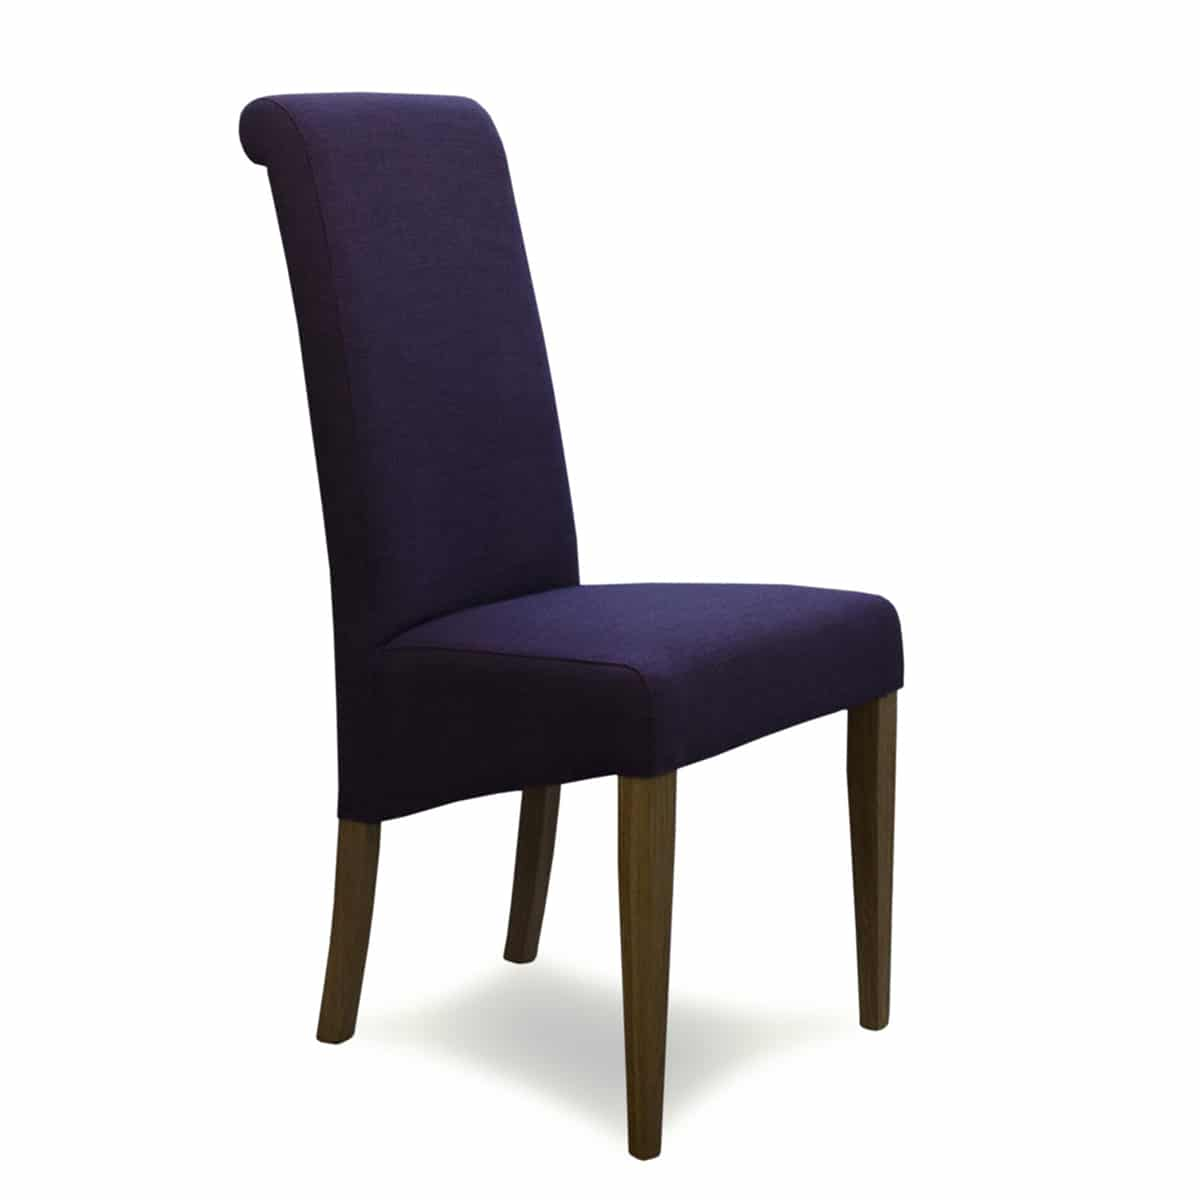 napoli purple fabric dining chair furniture and mirror. Black Bedroom Furniture Sets. Home Design Ideas